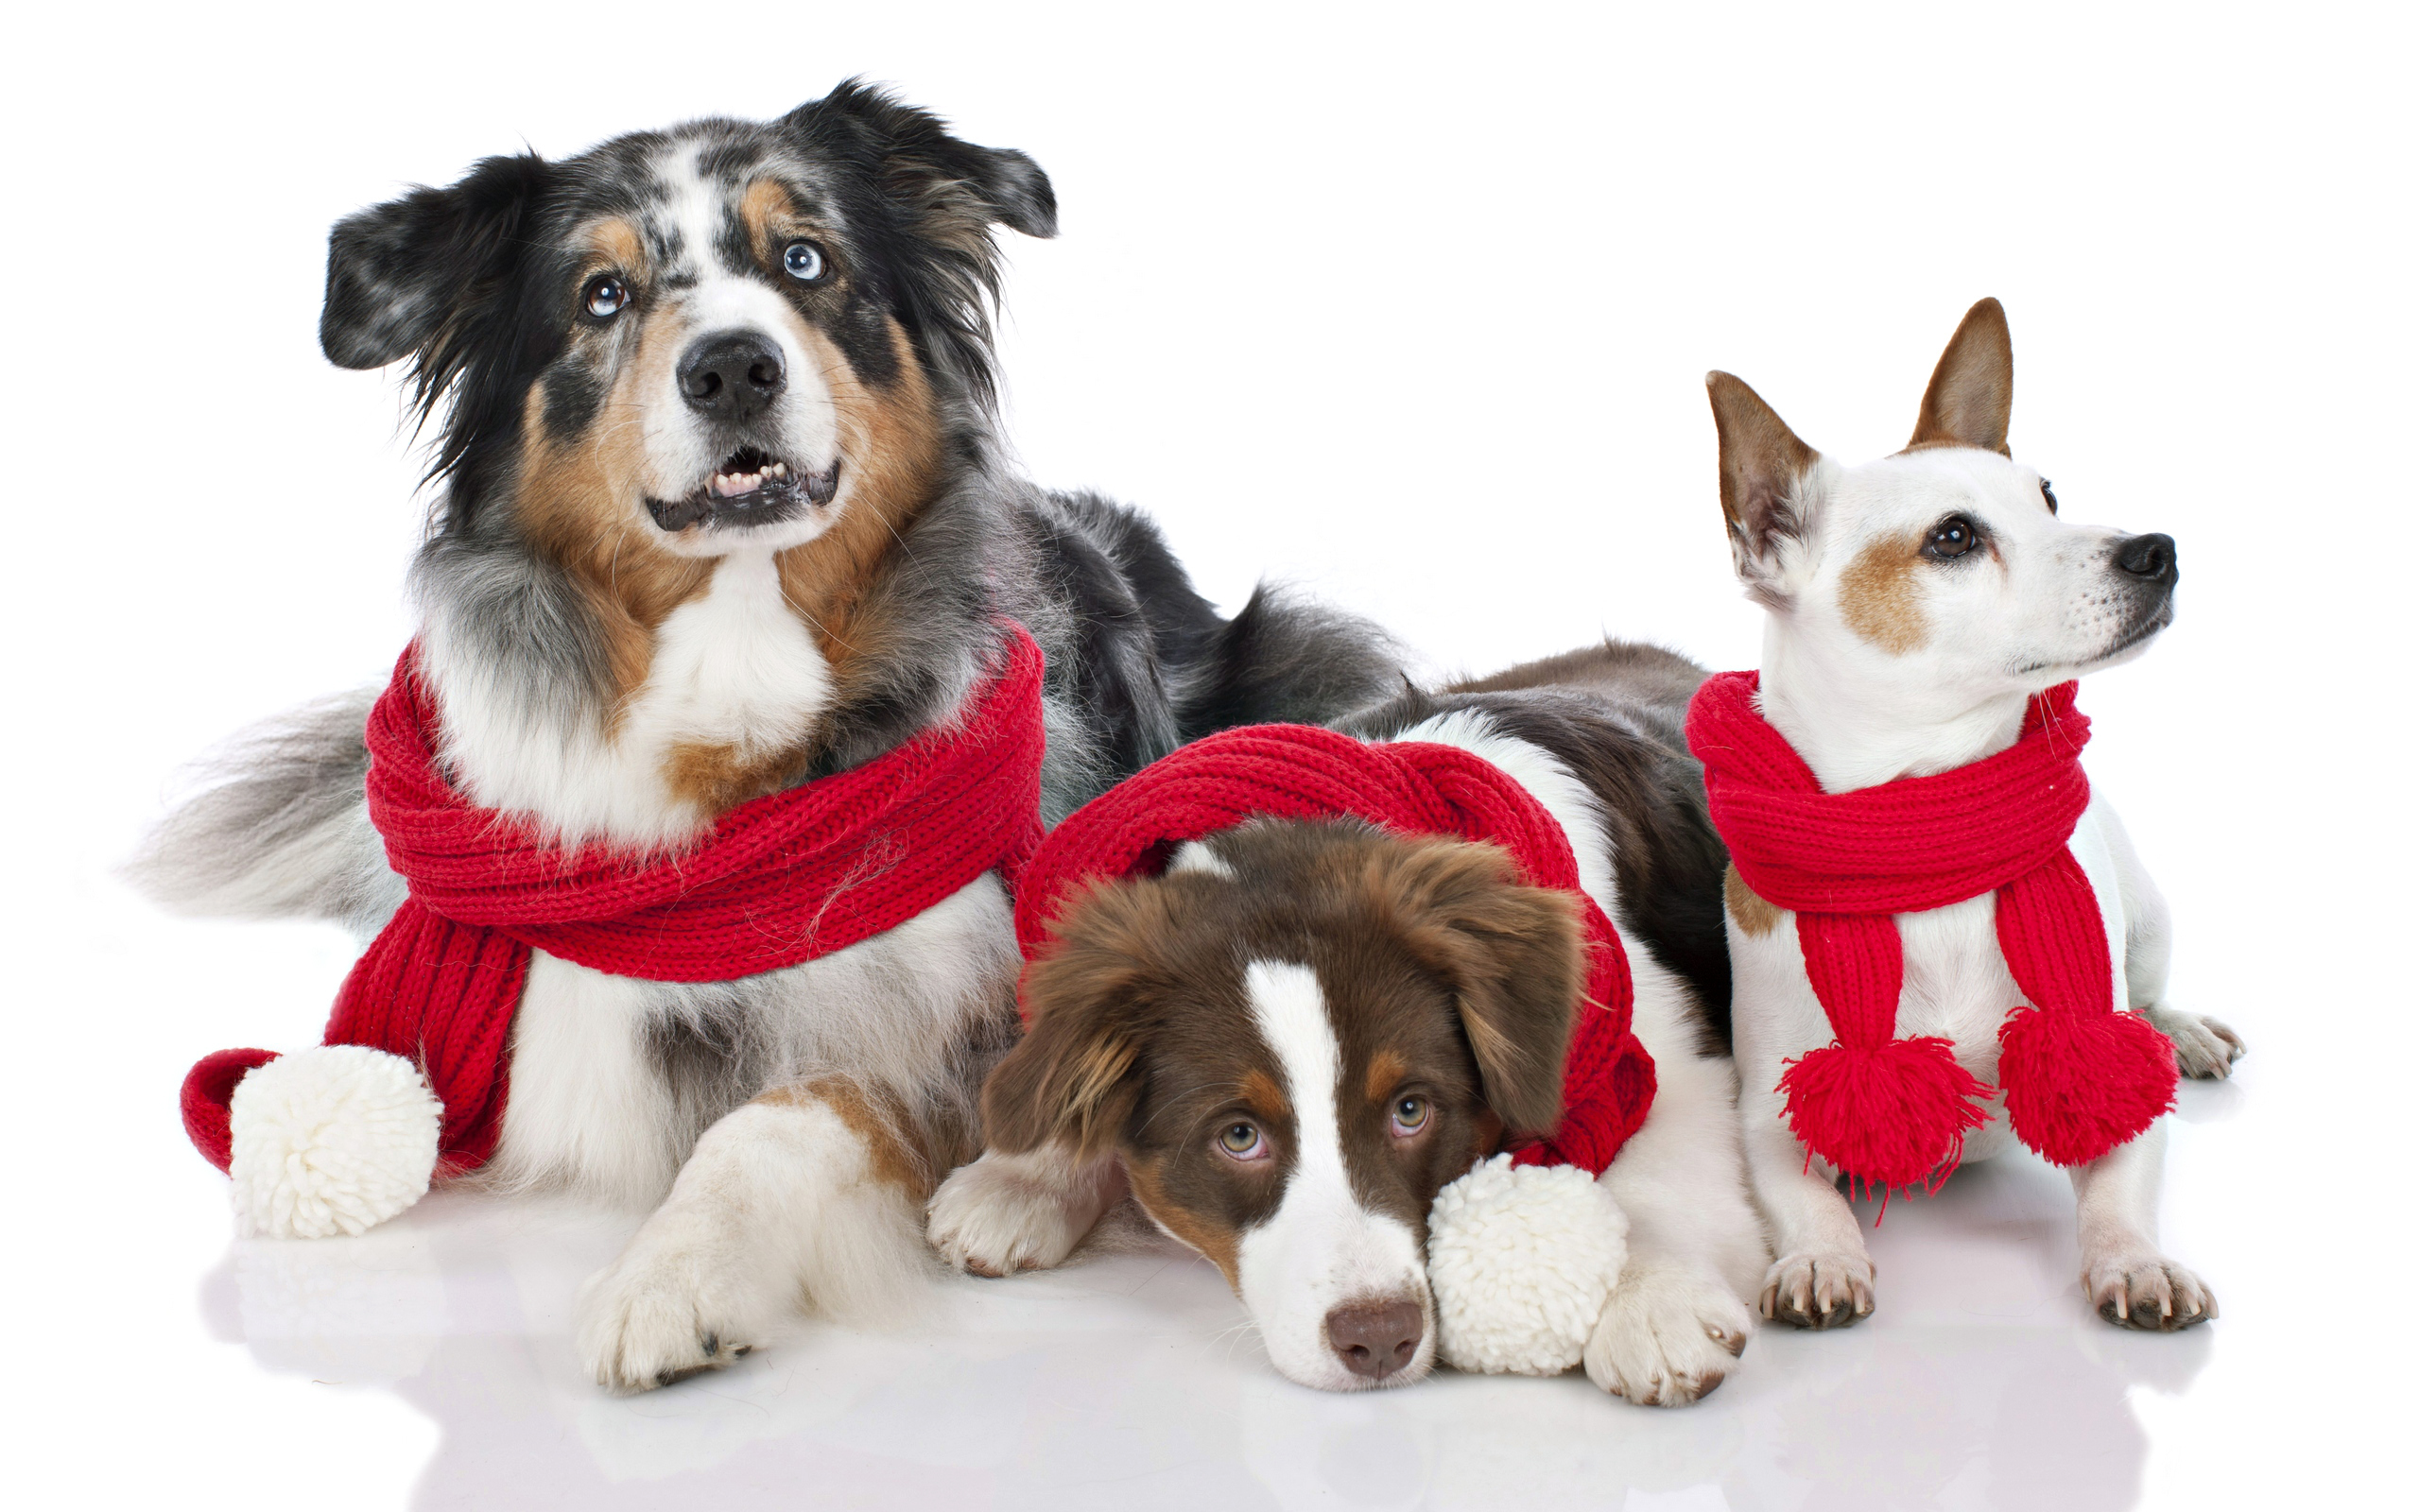 animal dogs look merry christmas red cowl puppy photo wallpaper 2560x1600